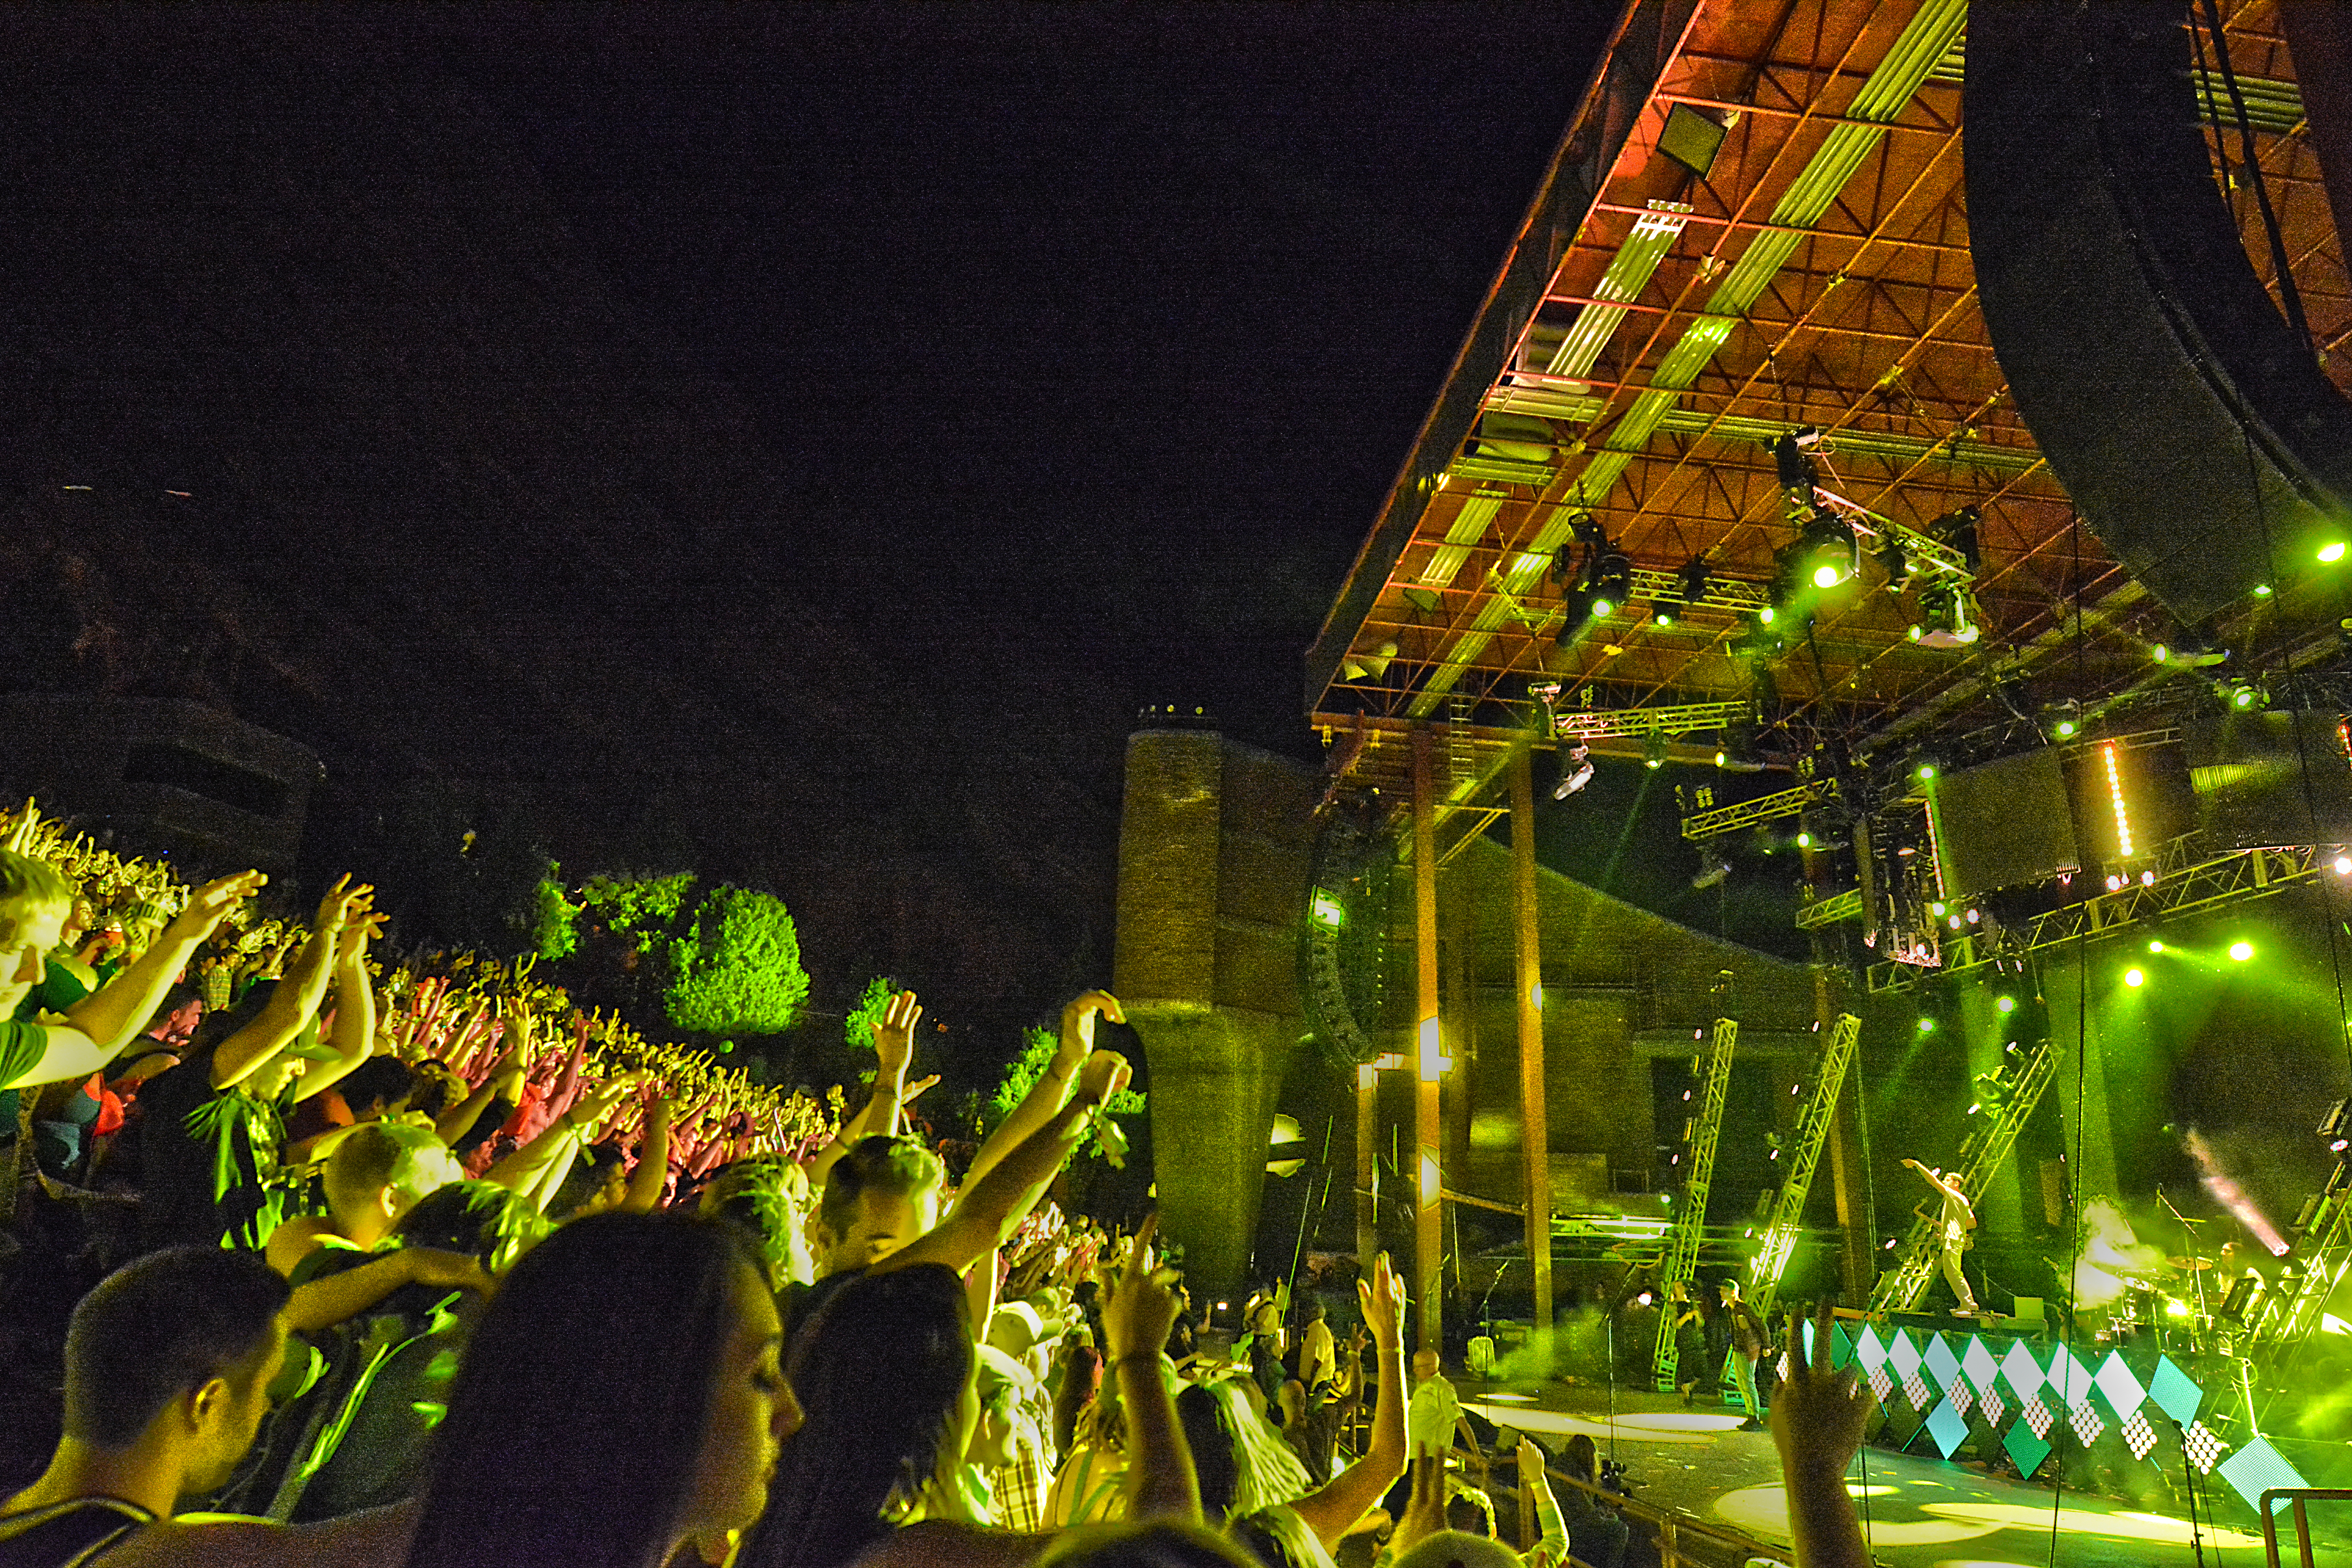 Big Gigantic performing at Rowdytown 3 at Red Rocks Amphitheatre. Photo by: Matthew McGuire